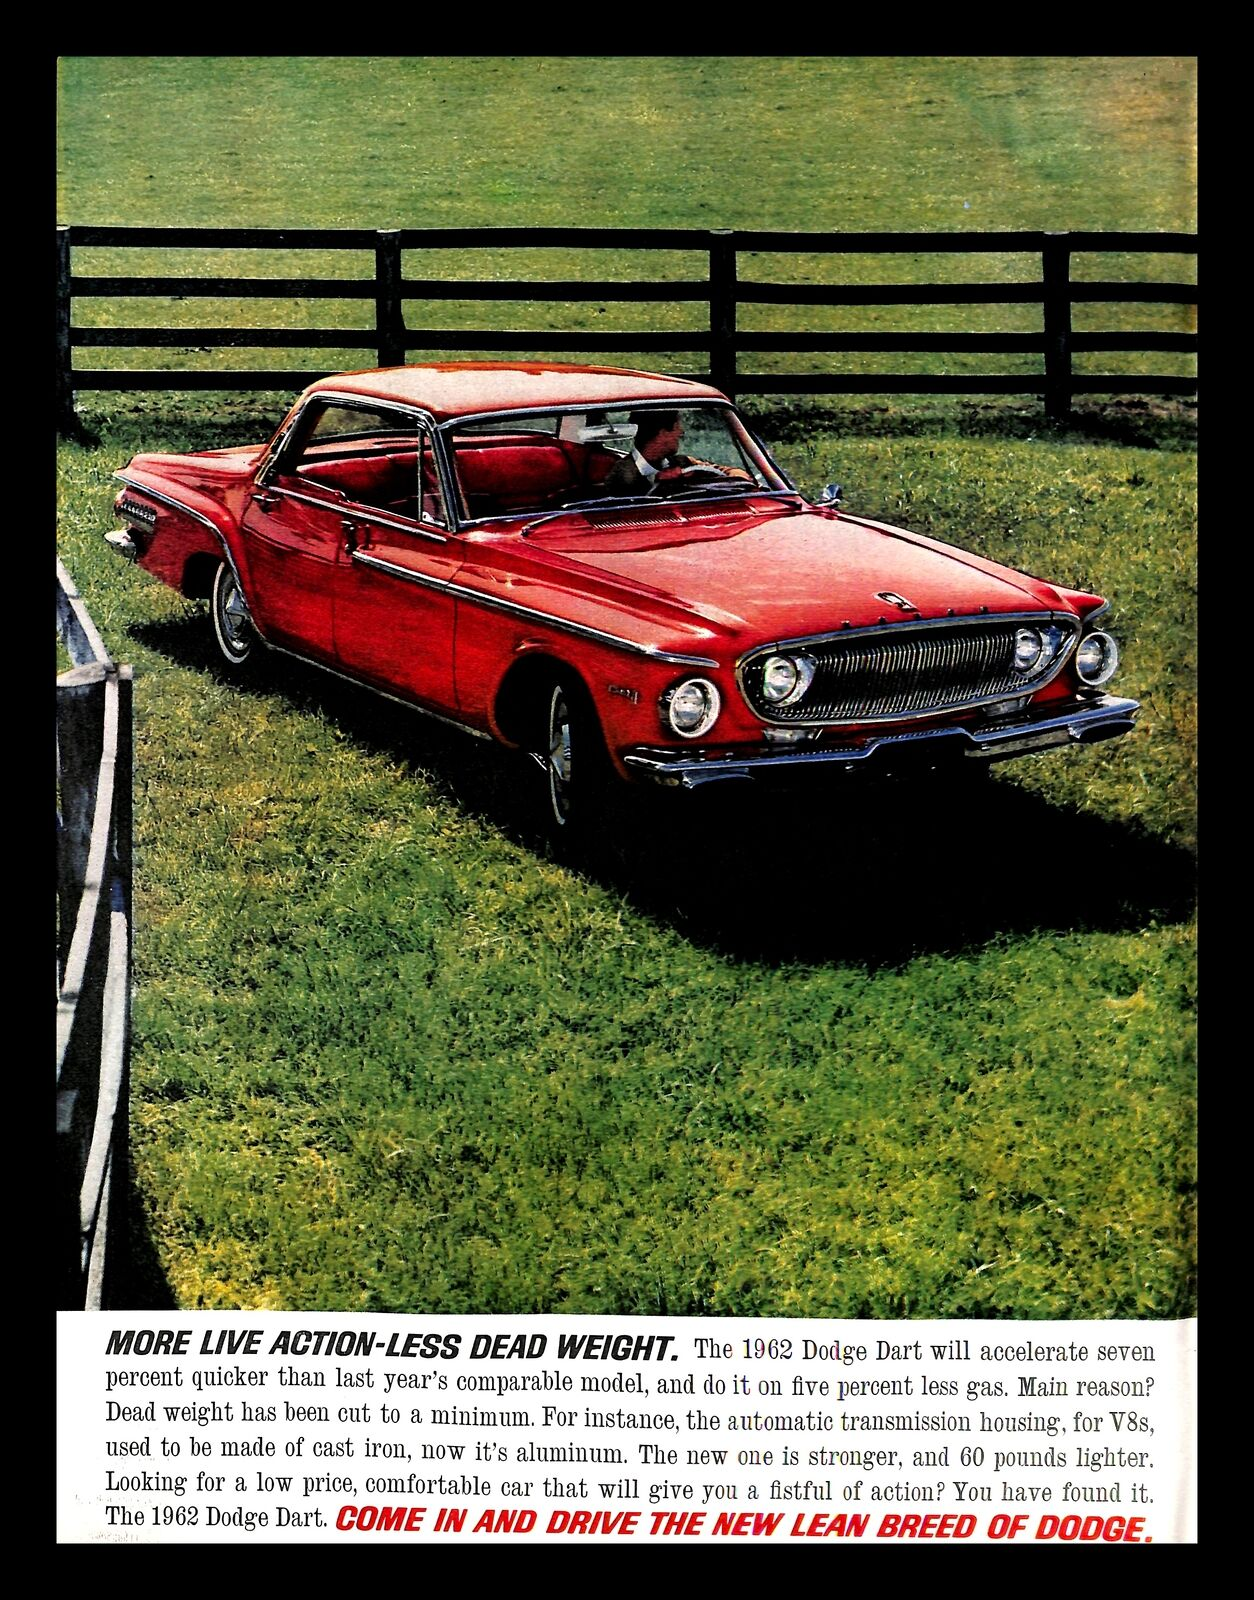 1962 Dodge Dart Classic Red Car Vintage Print Ad Countryside Fencing Field 1960s Ebay